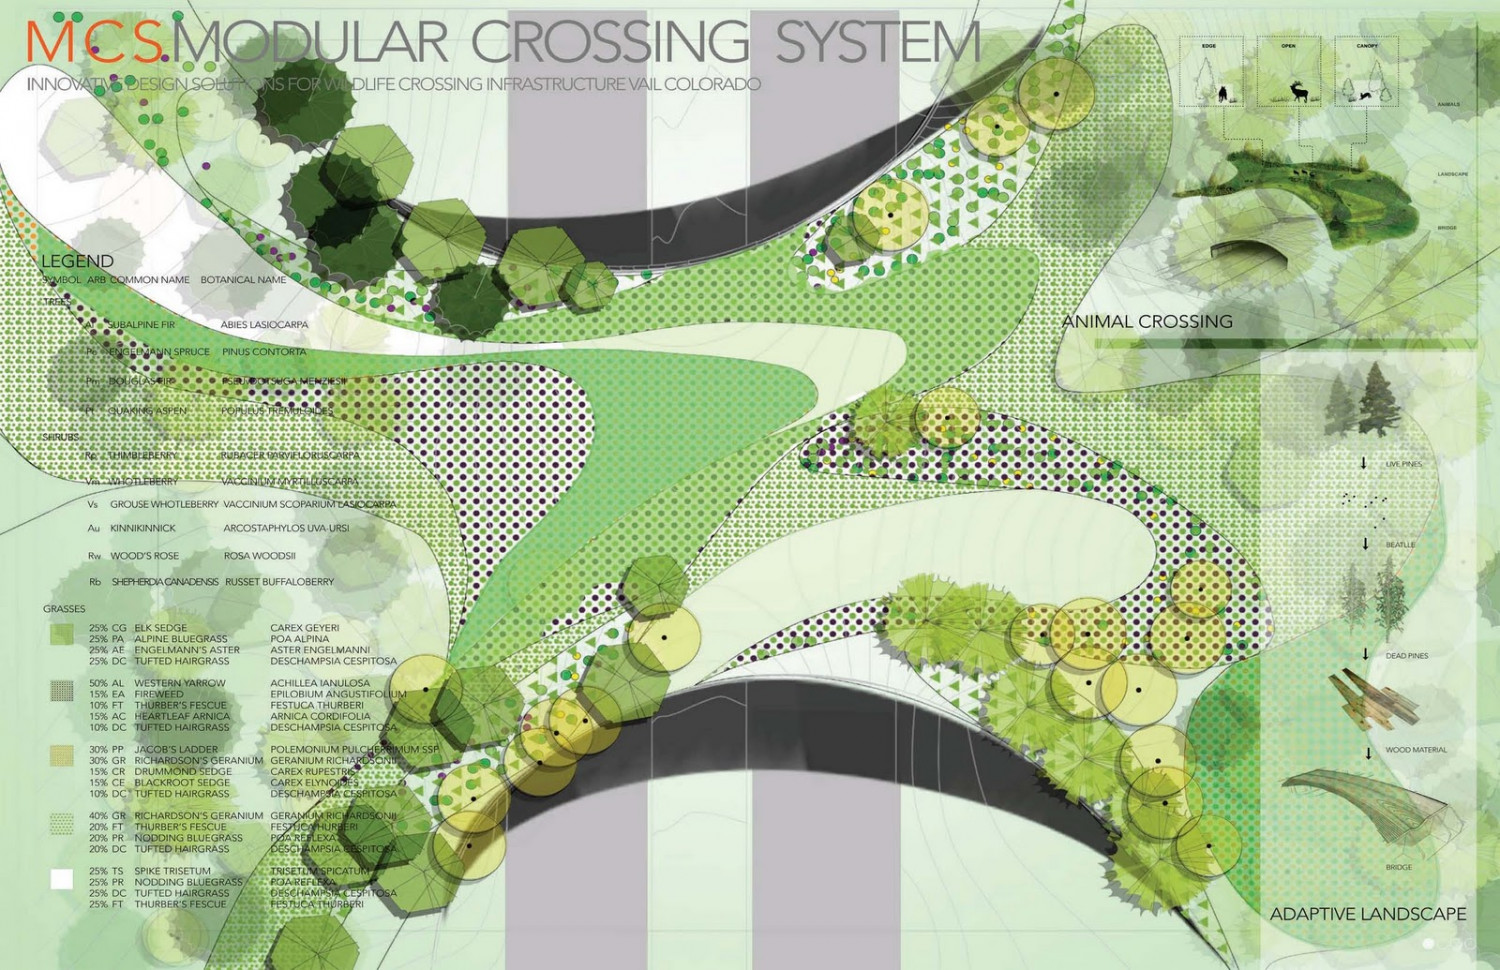 MCS Modular Crossing System Infographic